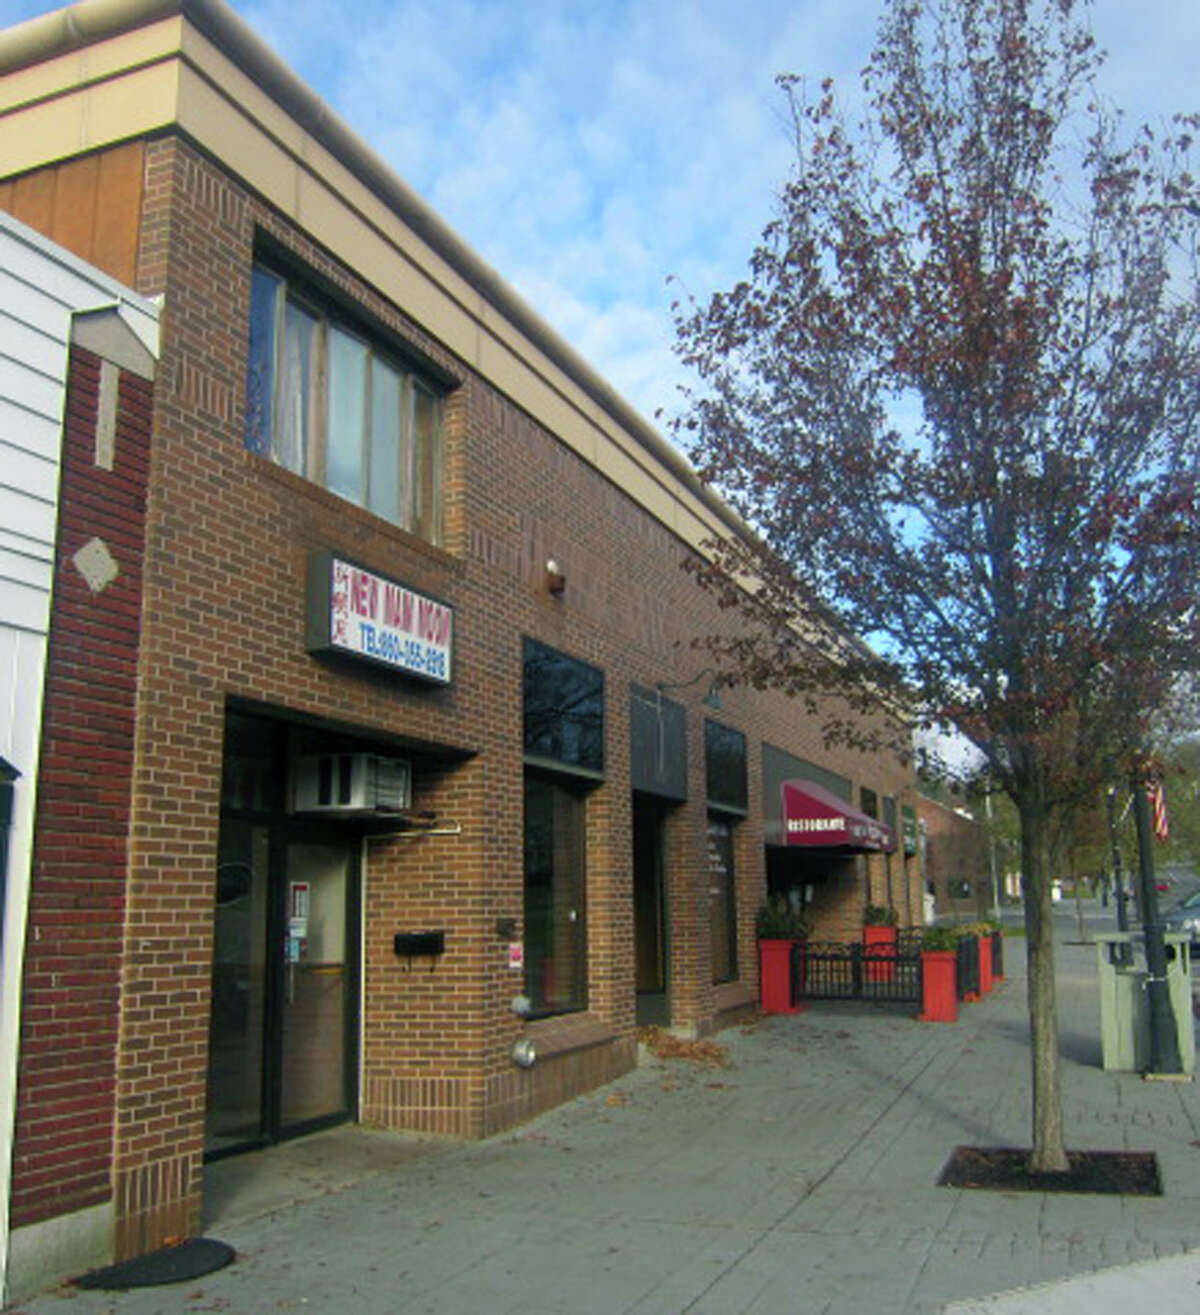 The building at 27 Main Street in the New Milford village center has been purchased by Sherman resident Gary Goldring. November 2012